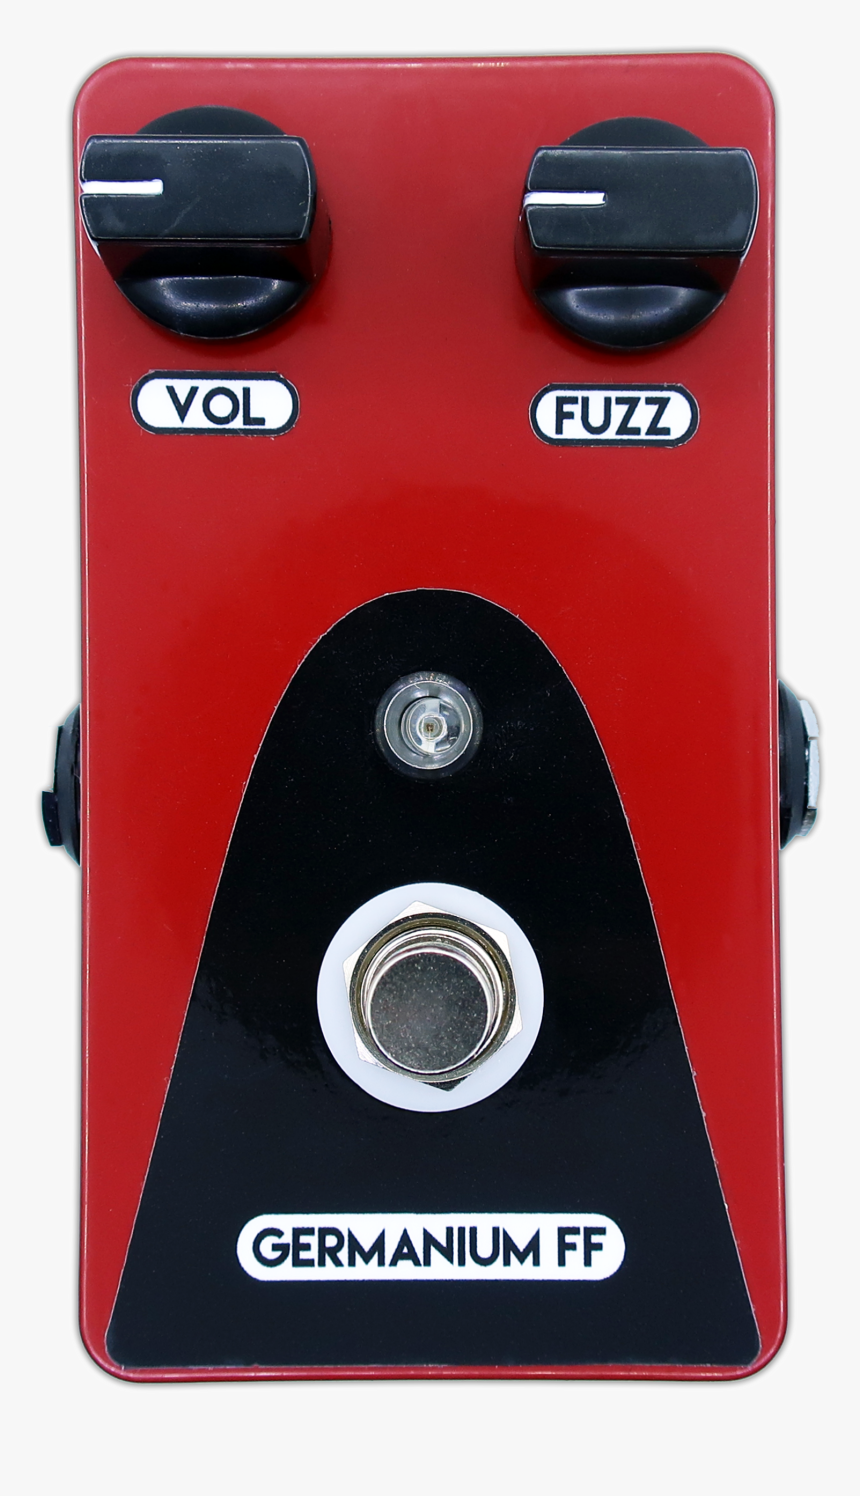 Germanium Fuzz Pedal, HD Png Download, Free Download